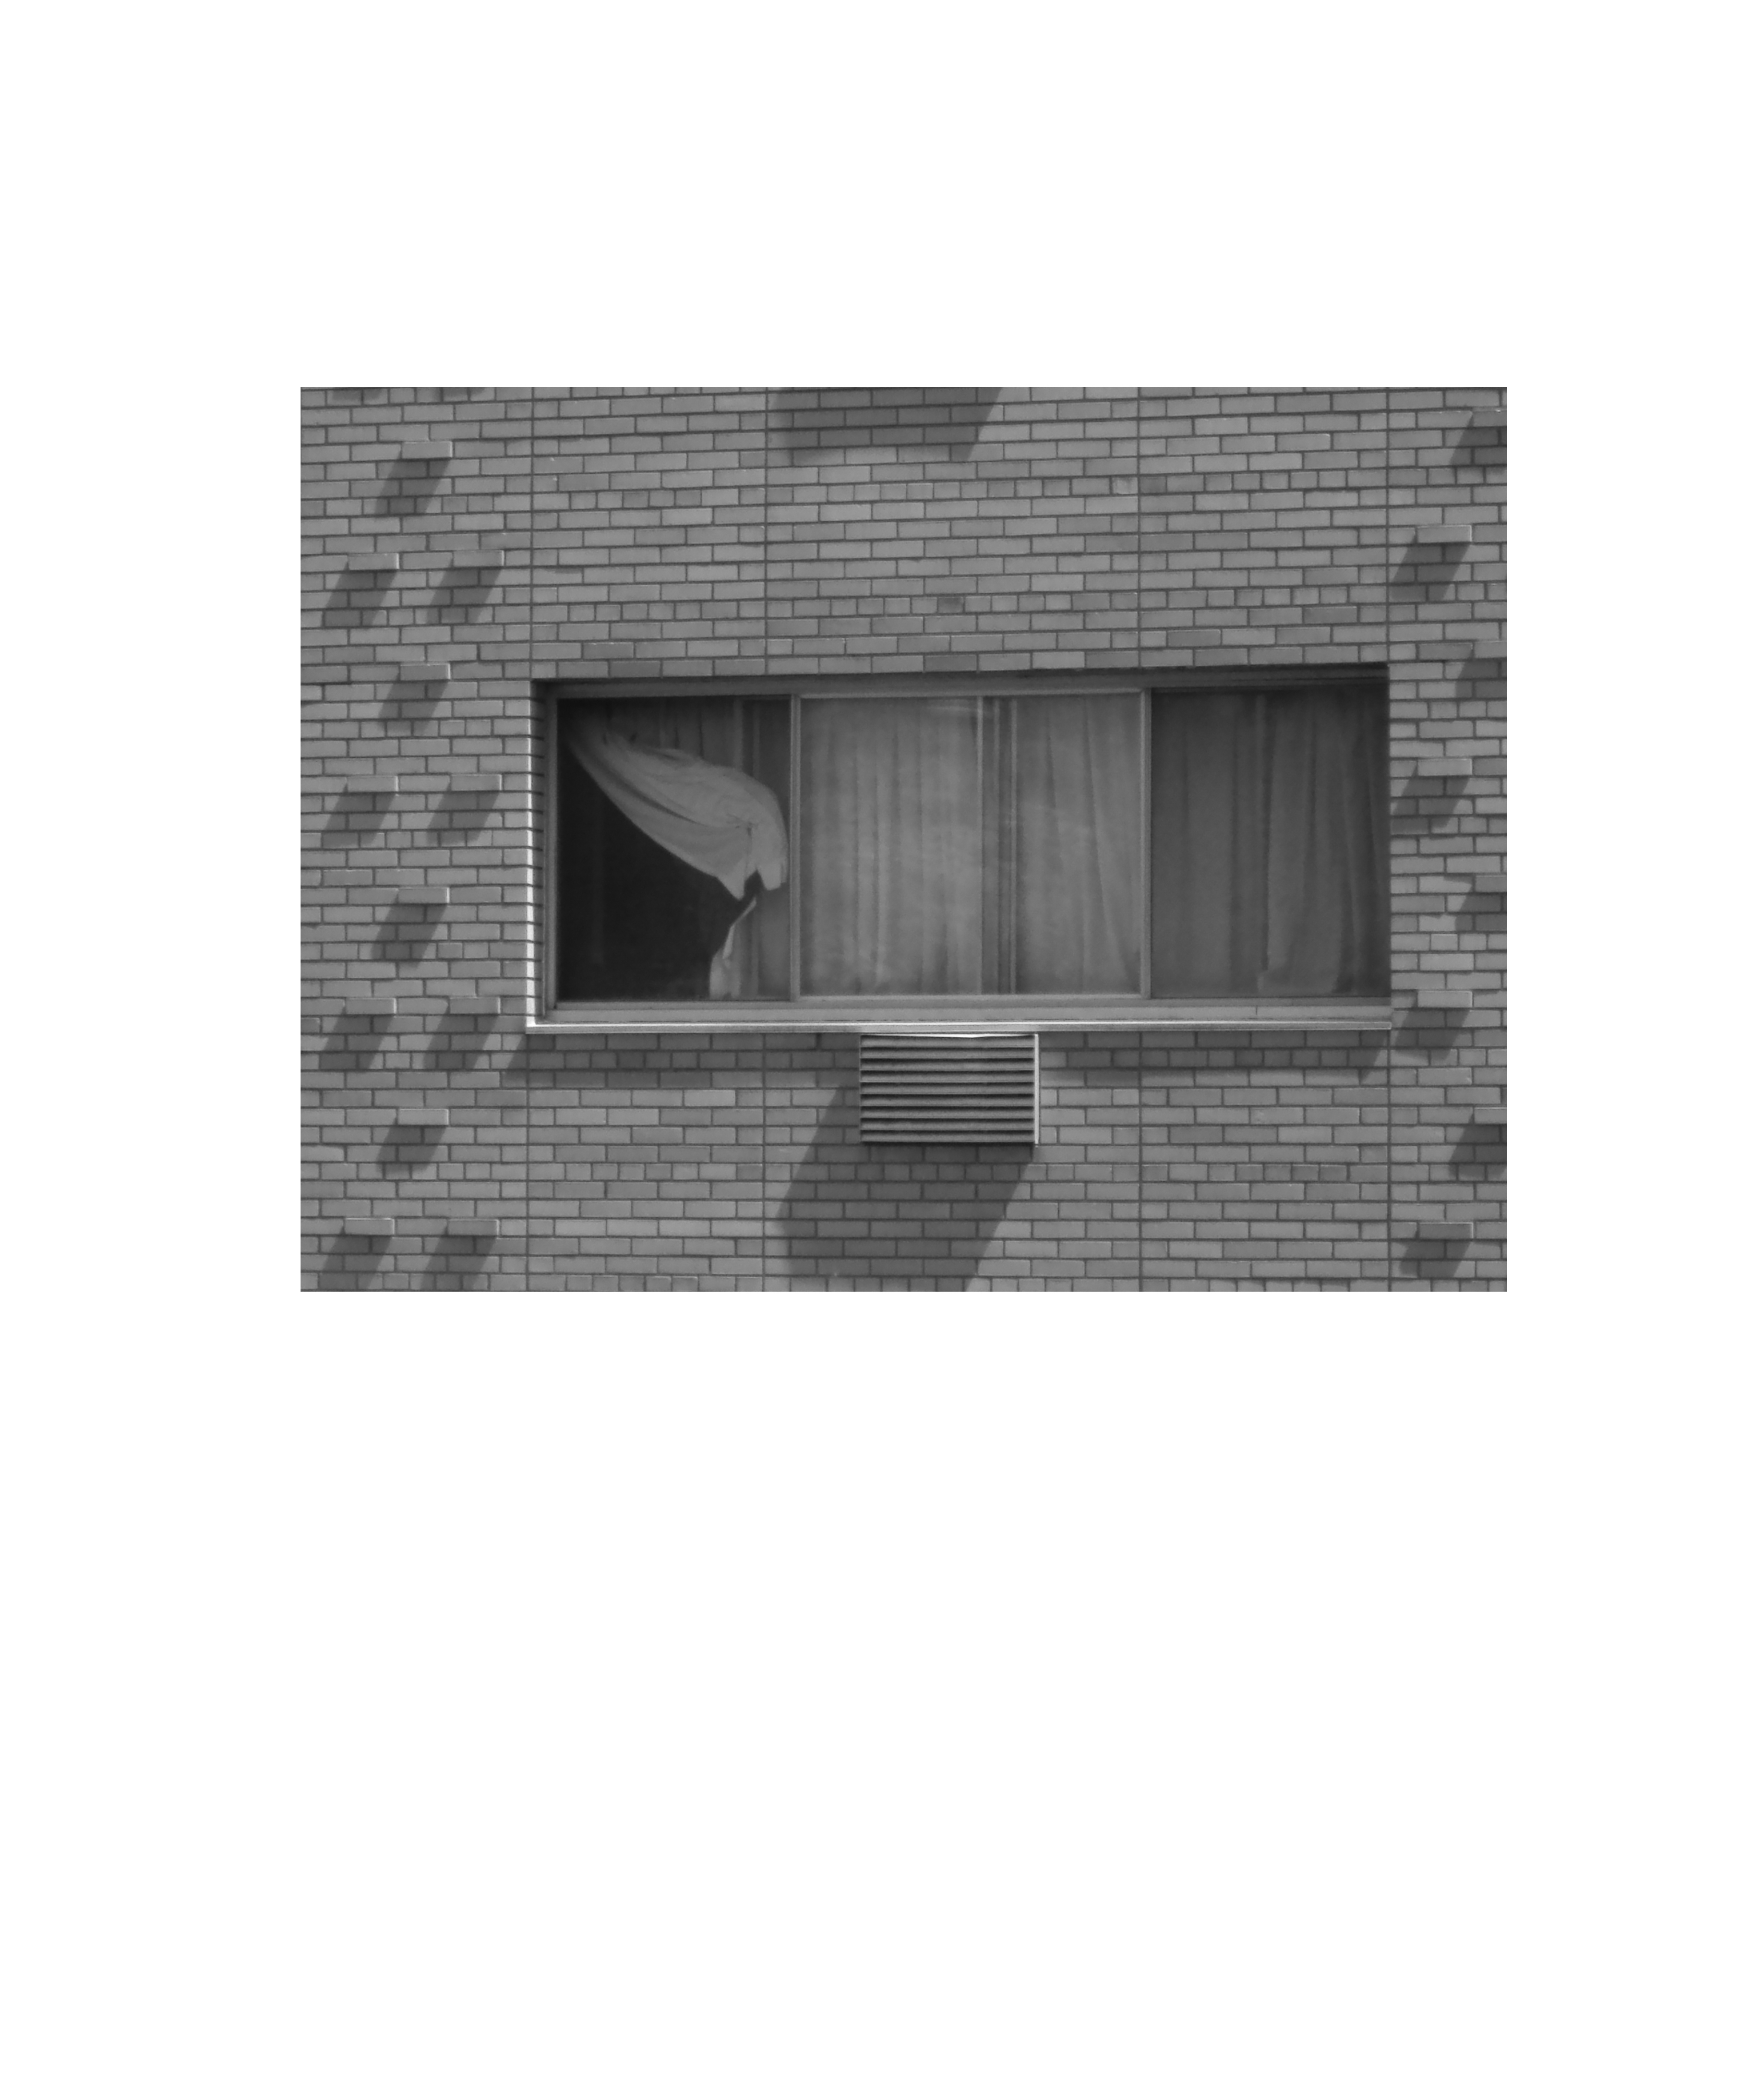 photograph of brick wall with window